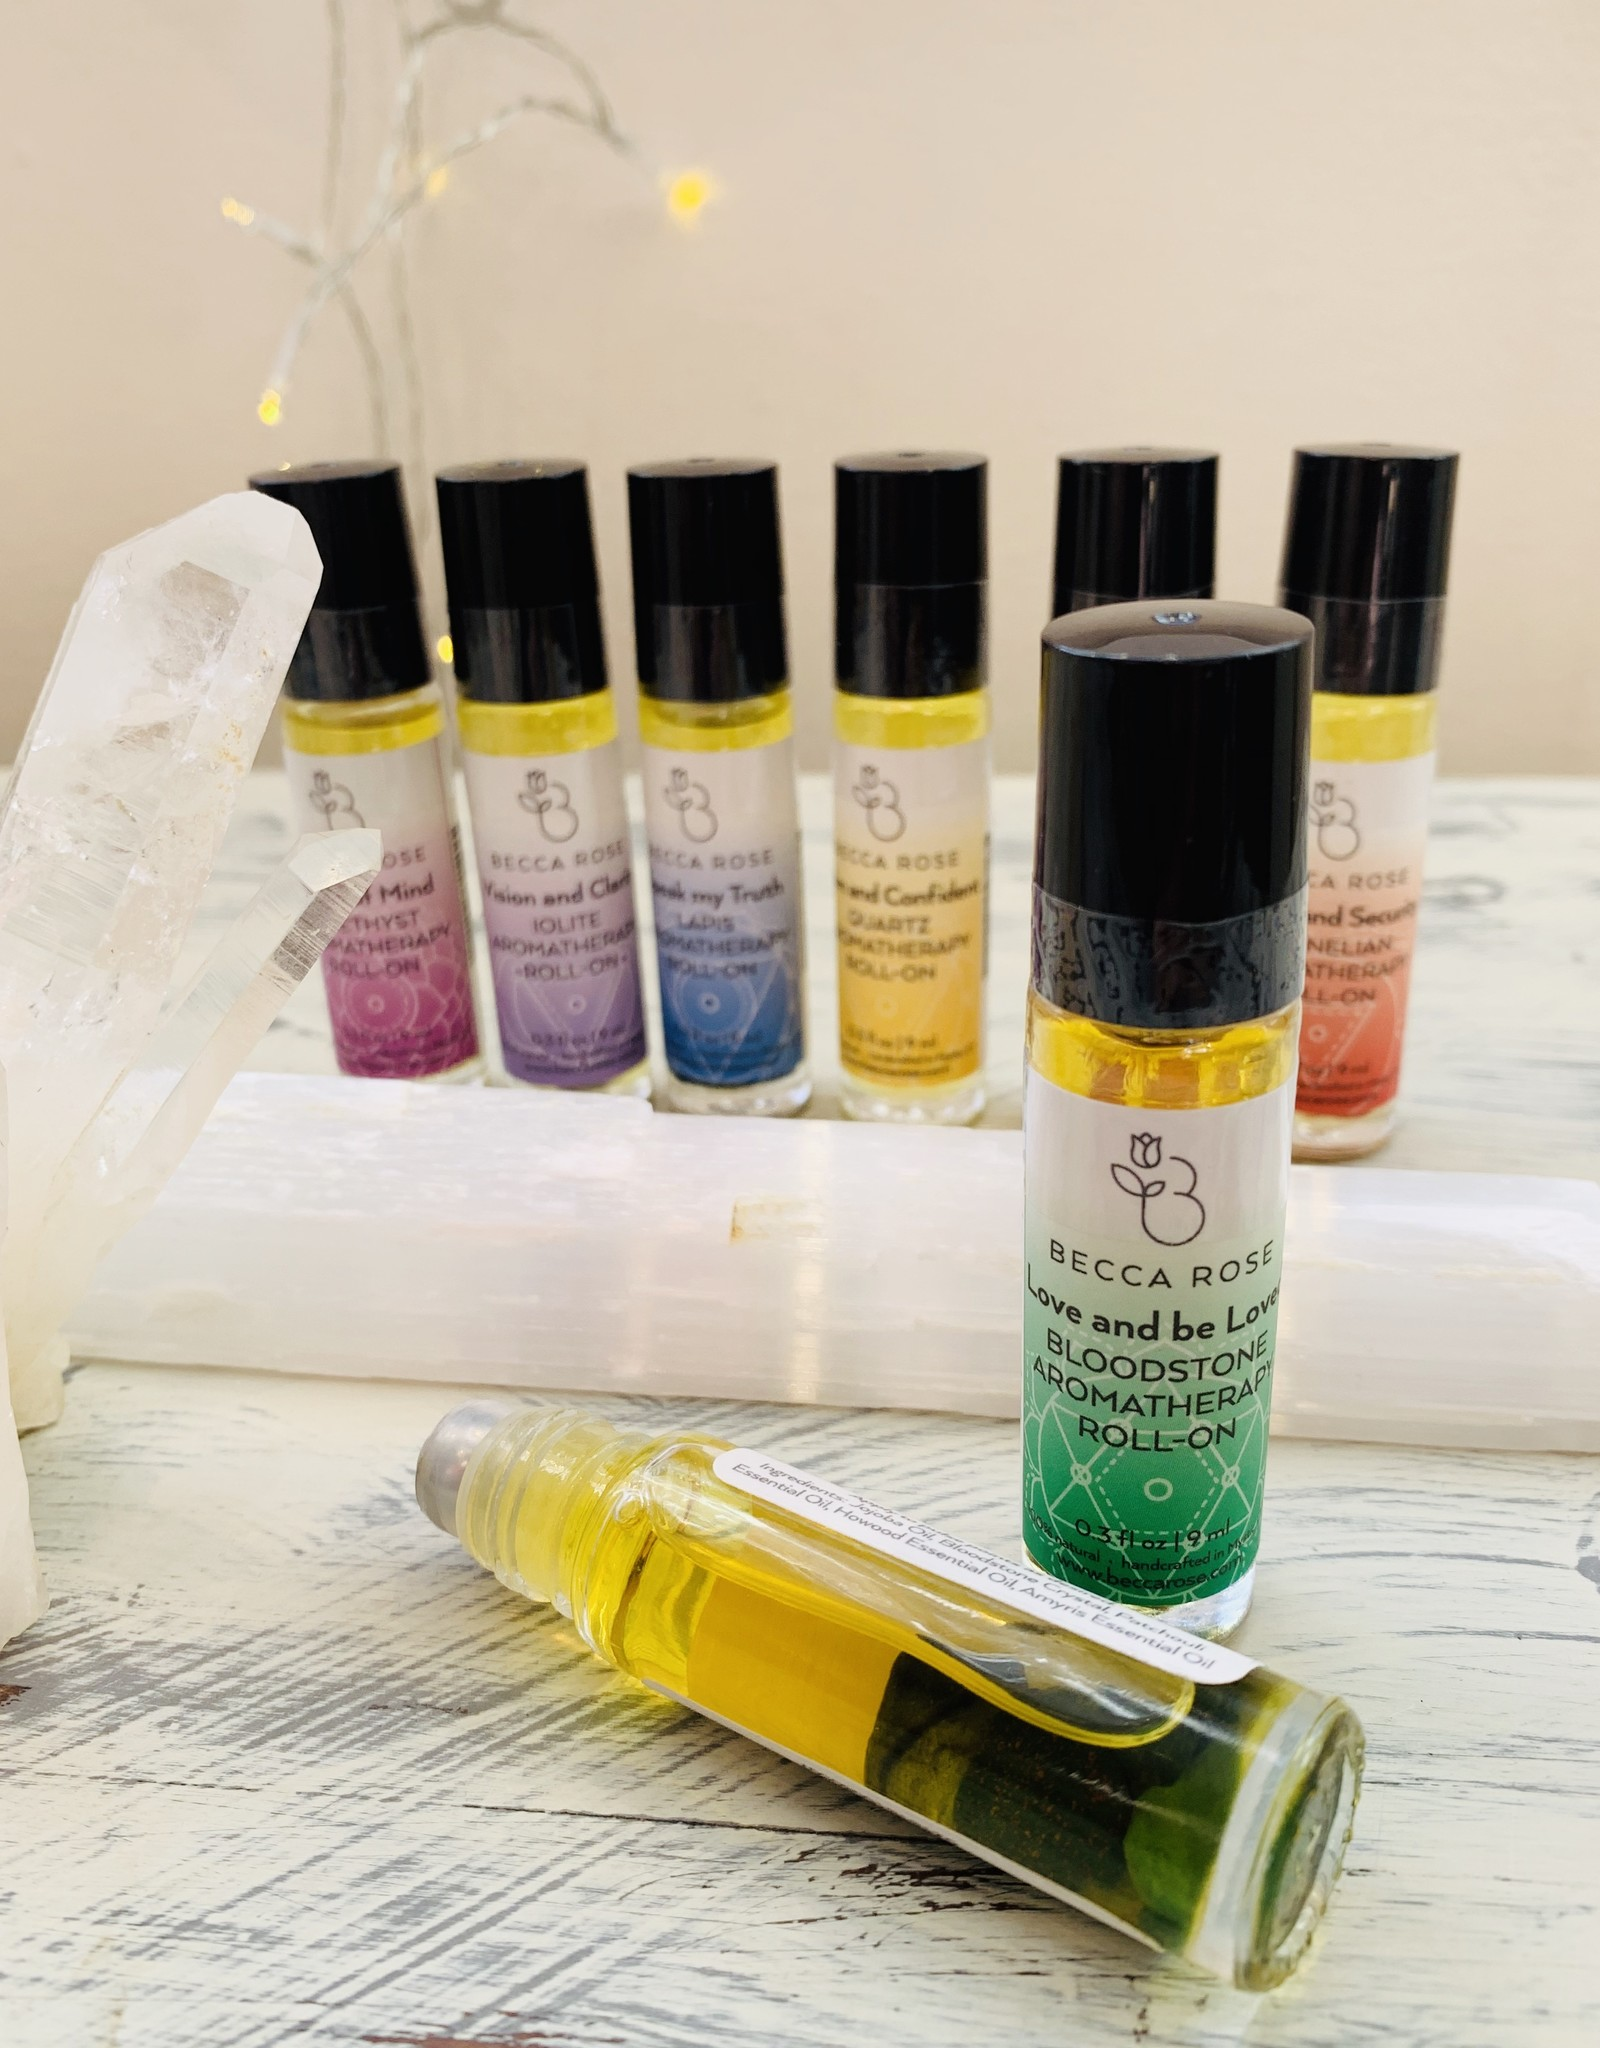 Becca Rose Roll-On: Heart Chakra- Love and be Loved